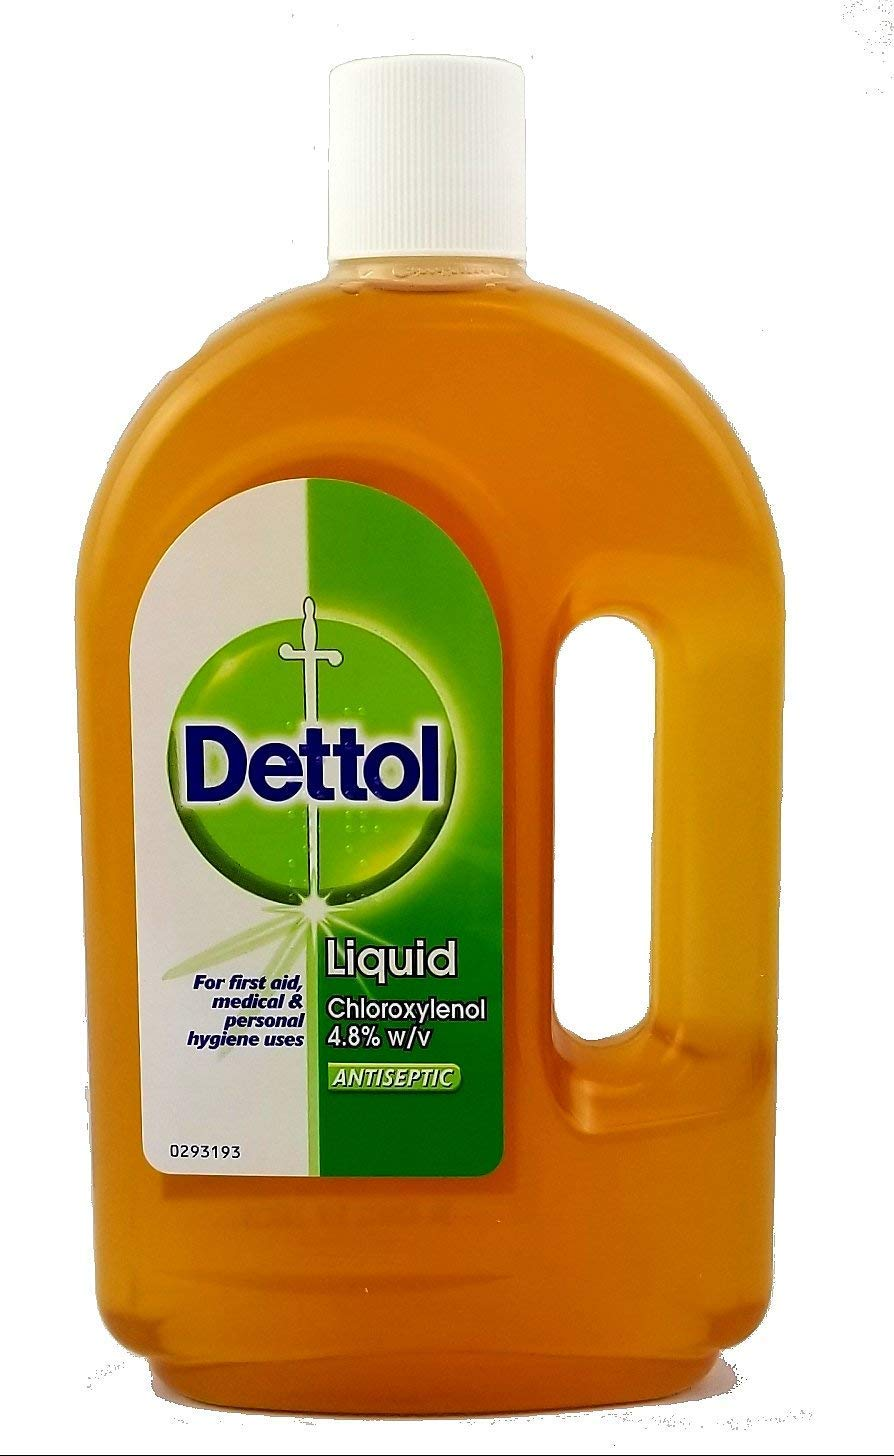 Dettol Liquid - 750ml (England) - Packaging may vary